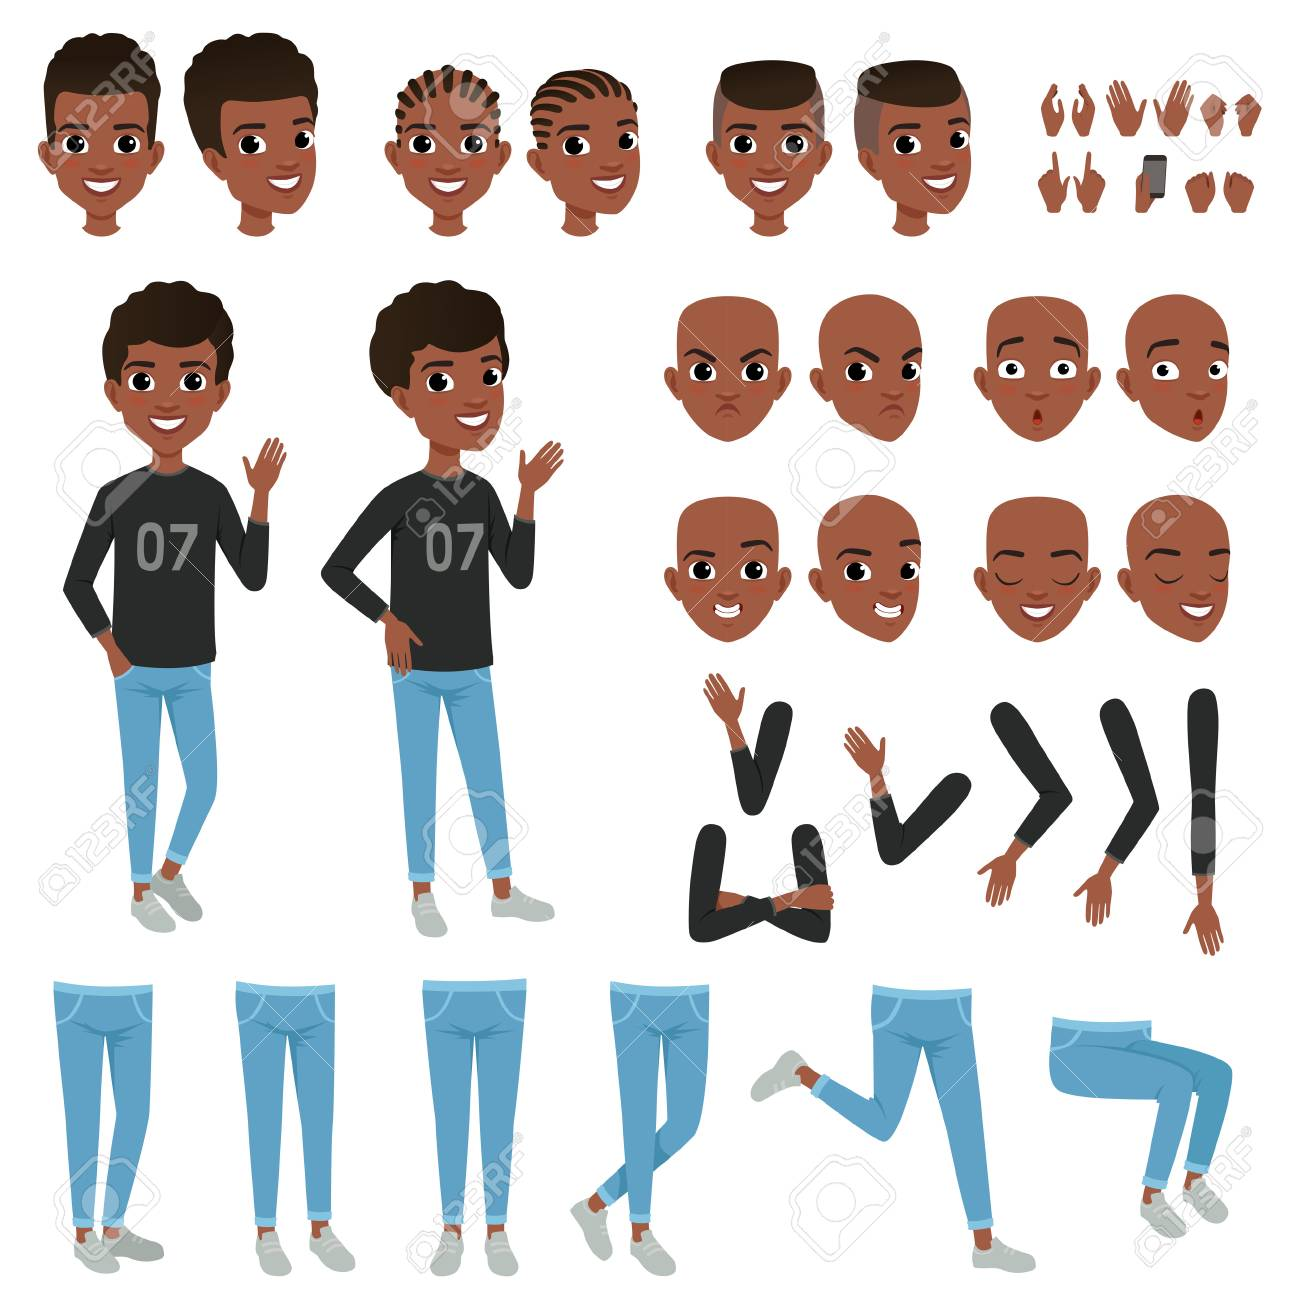 Teenager character constructor. Black boy s separate parts of body arms, legs, heads with different haircuts, hands gestures. Angry, calm, surprised and confident face expression. Flat vector design - 91046033